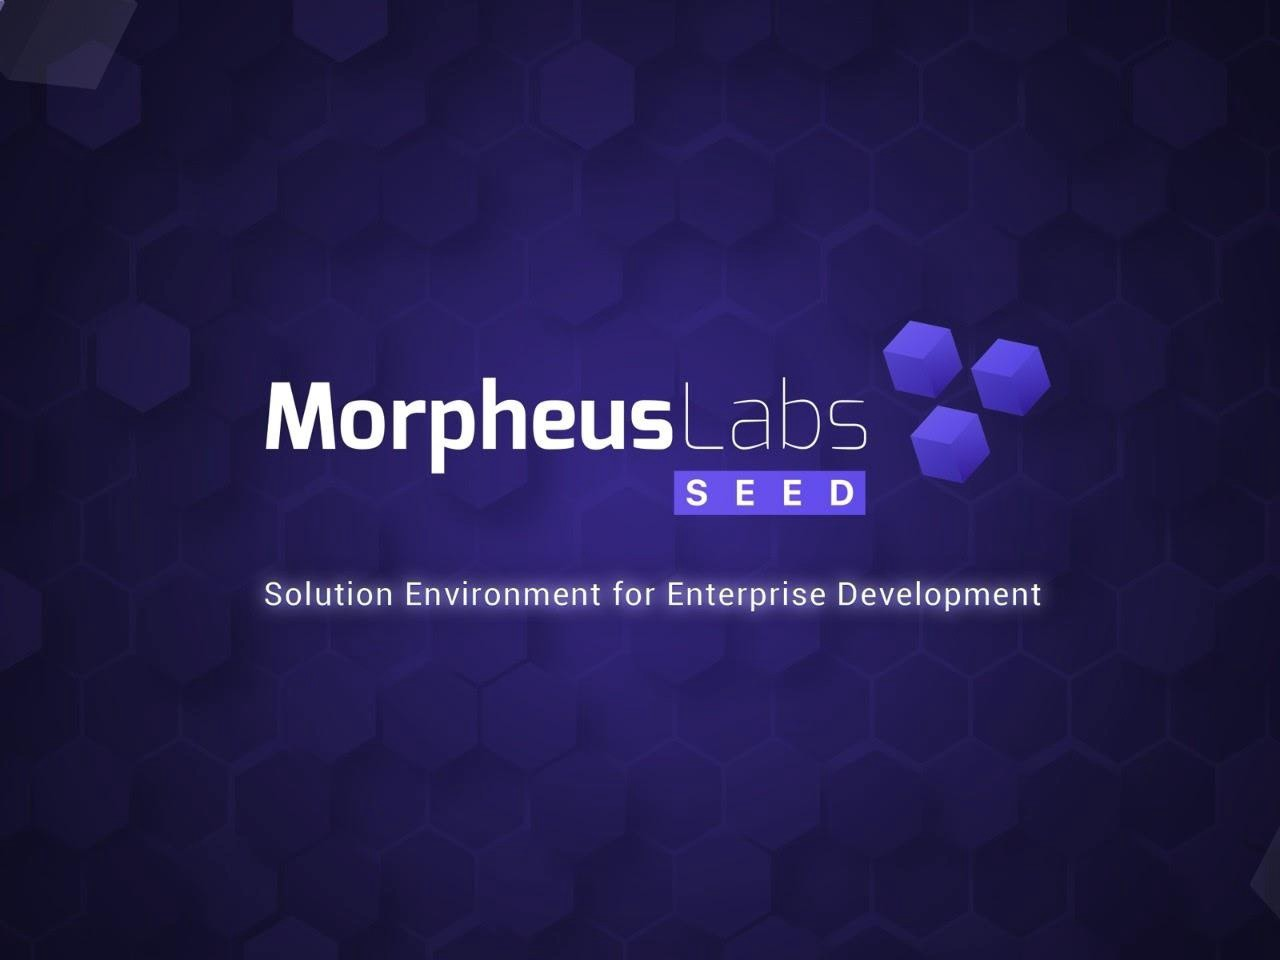 Introducing Morpheus Labs SEED